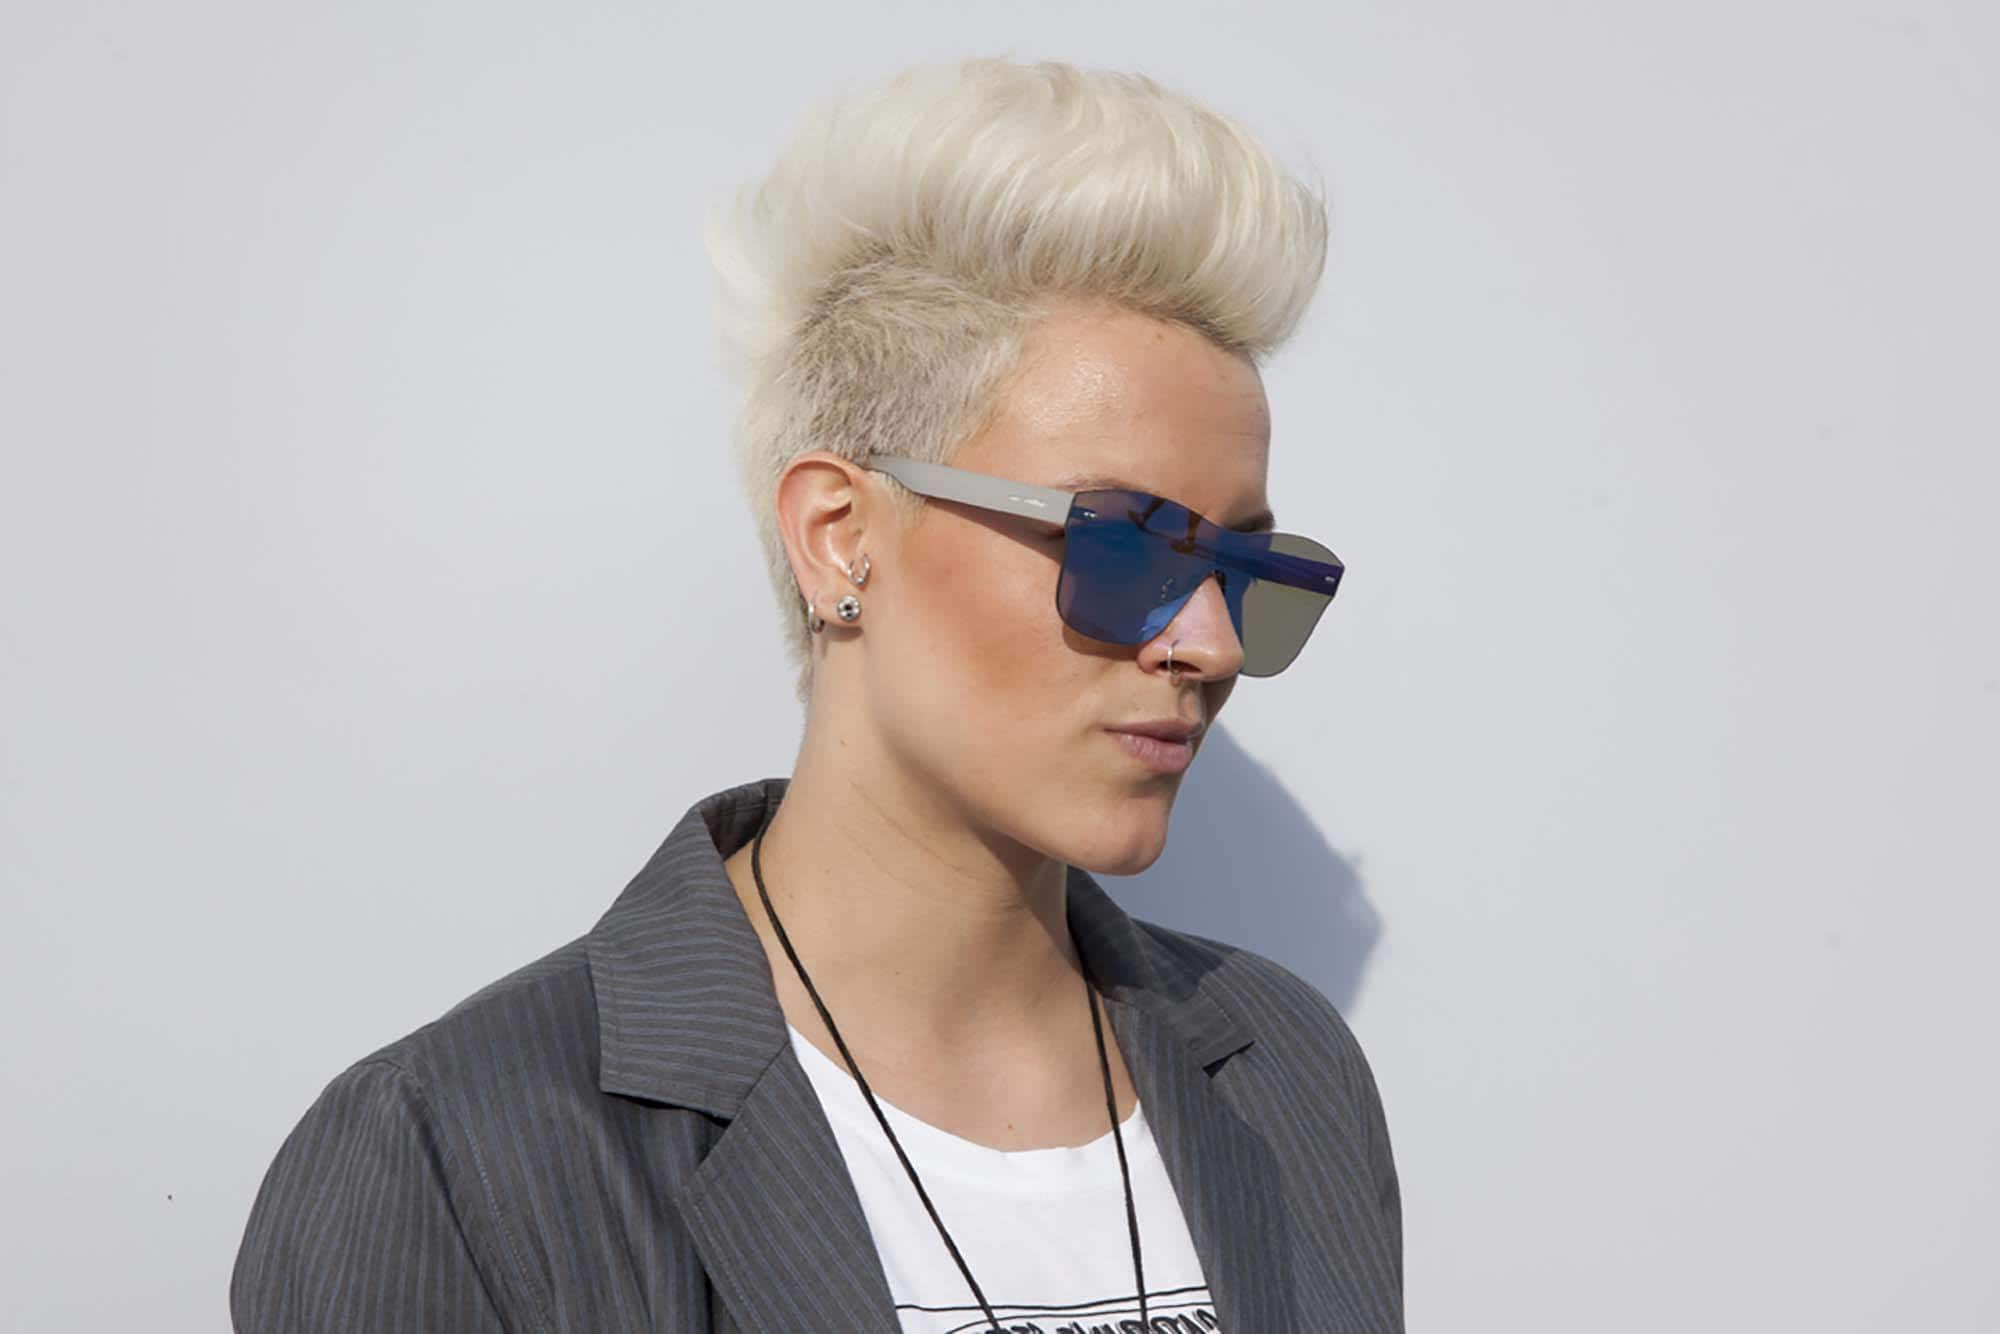 Short Spiky Haircuts: 5 Edgy Looks You'll Love With Regard To Current Soft Spiked Mohawk Hairstyles (Gallery 9 of 20)